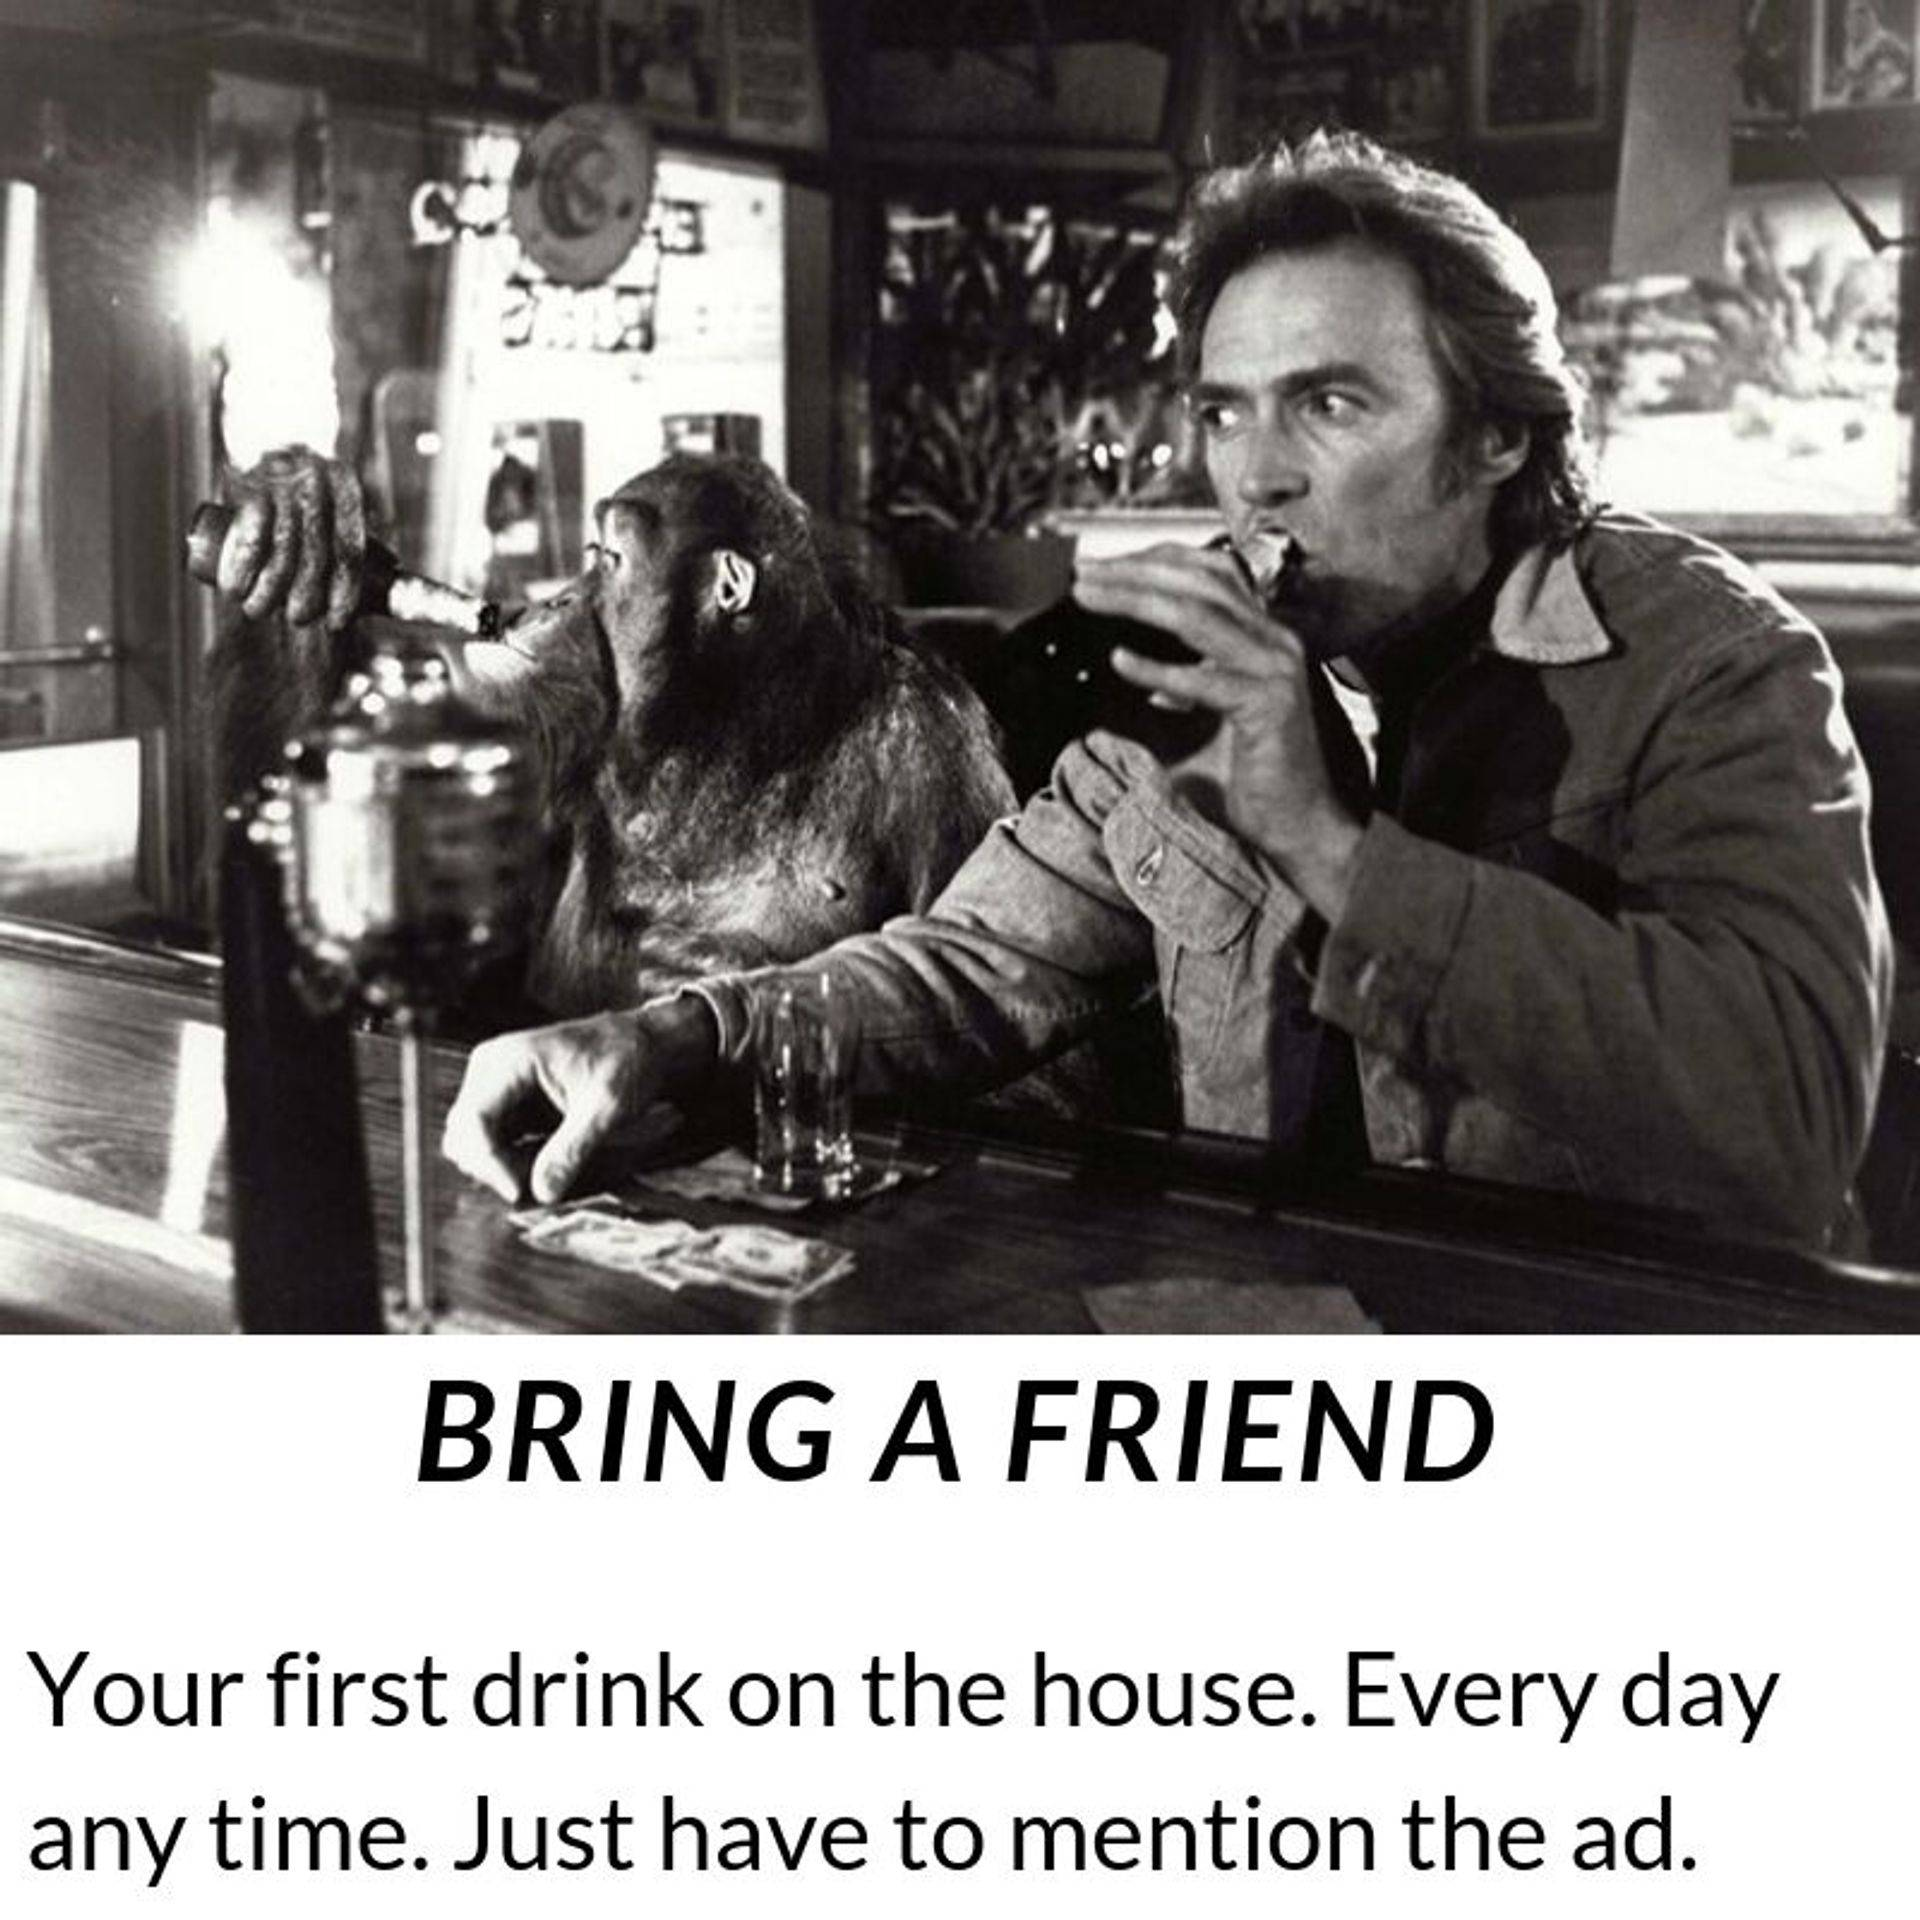 Bring a friend and get your first drink on us